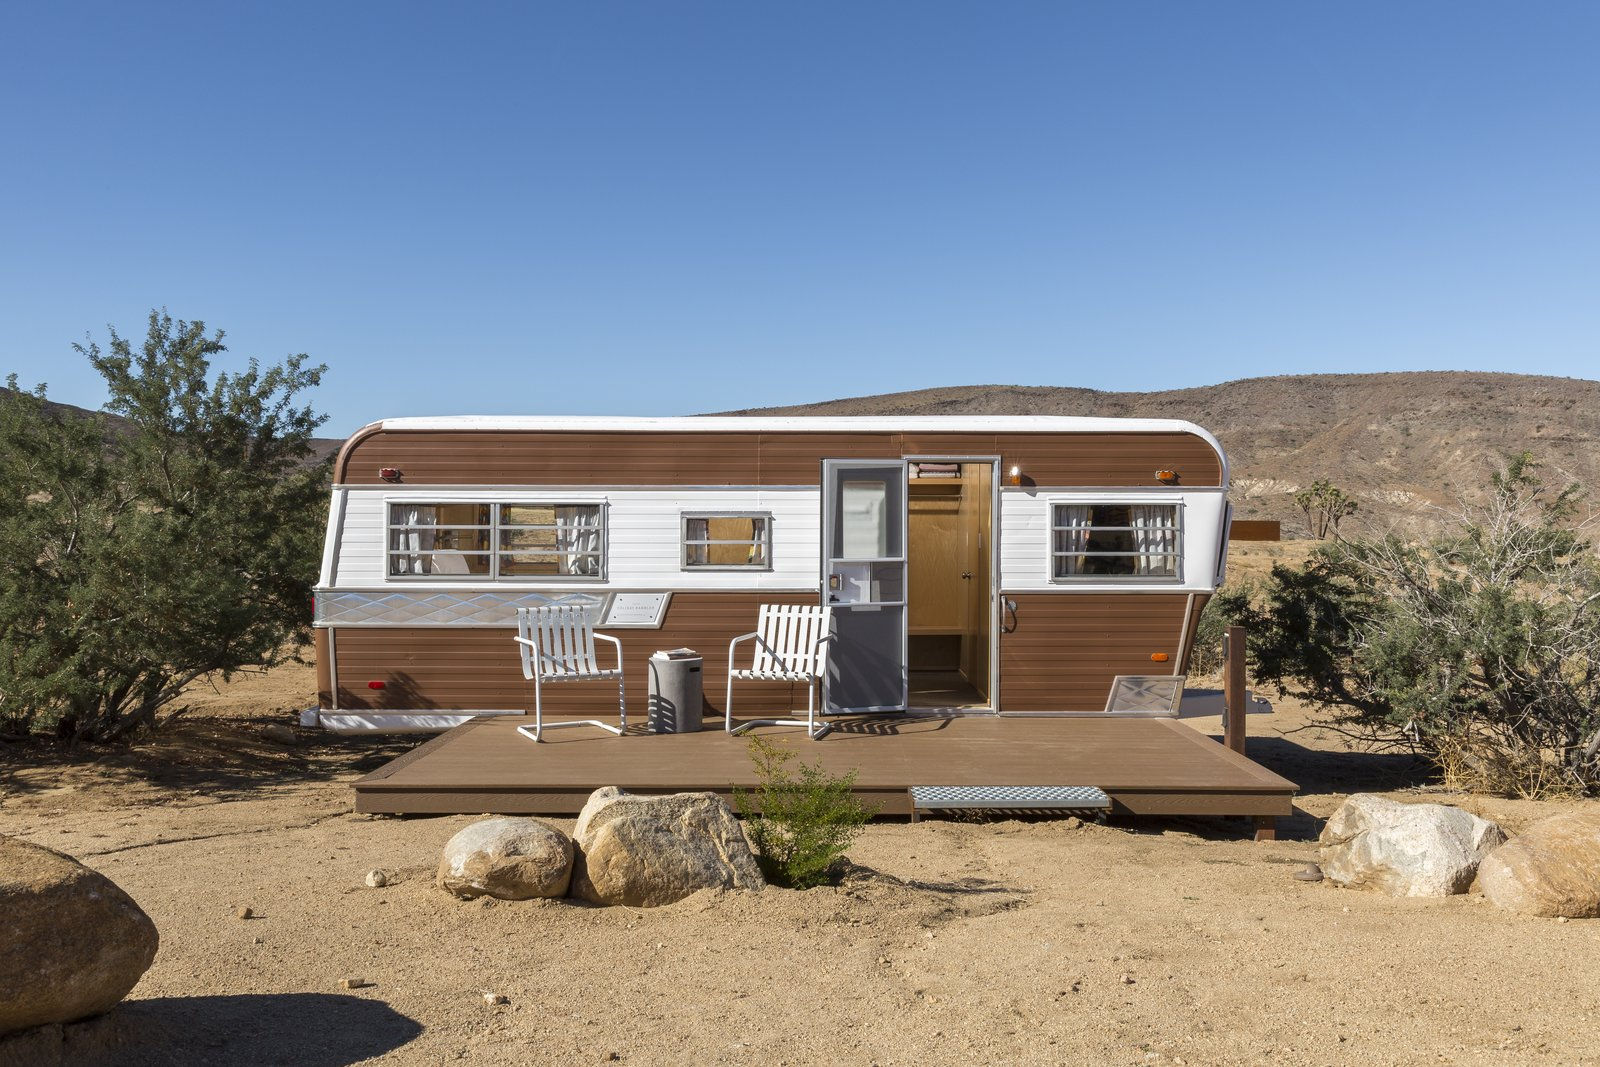 Exterior, Camper Building Type, Curved RoofLine, Metal Siding Material, and Metal Roof Material Revamped 1973 Holiday Rambler is now an all new living space.  Photo 8 of 10 in This Modern Homestead With a Vintage Trailer Offers Adventure in California's High Desert